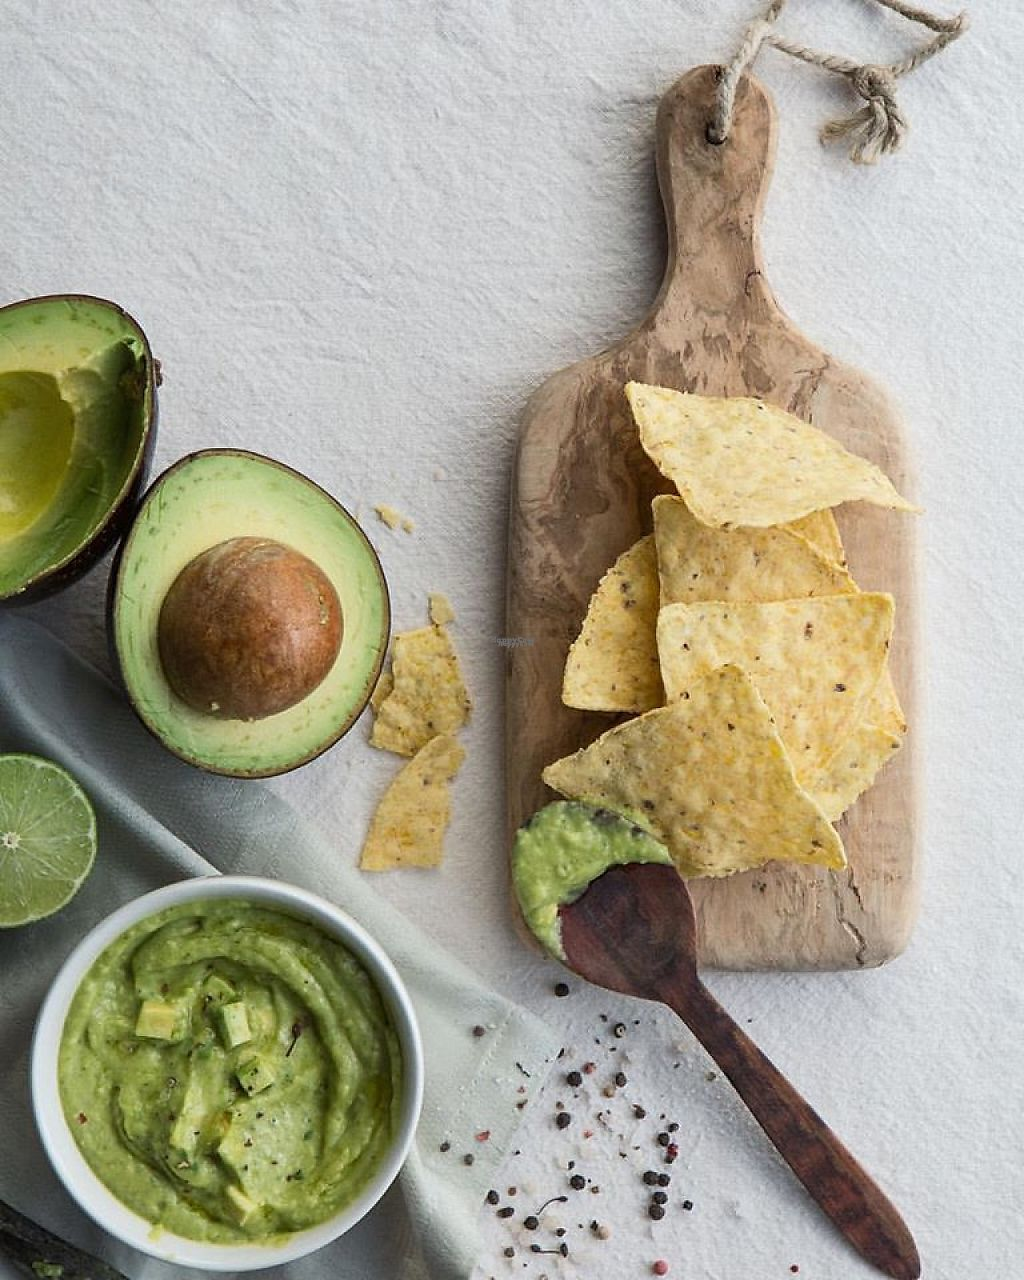 """Photo of Mundo Verde  by <a href=""""/members/profile/community"""">community</a> <br/>guacamole and nachos  <br/> March 7, 2017  - <a href='/contact/abuse/image/69354/233781'>Report</a>"""